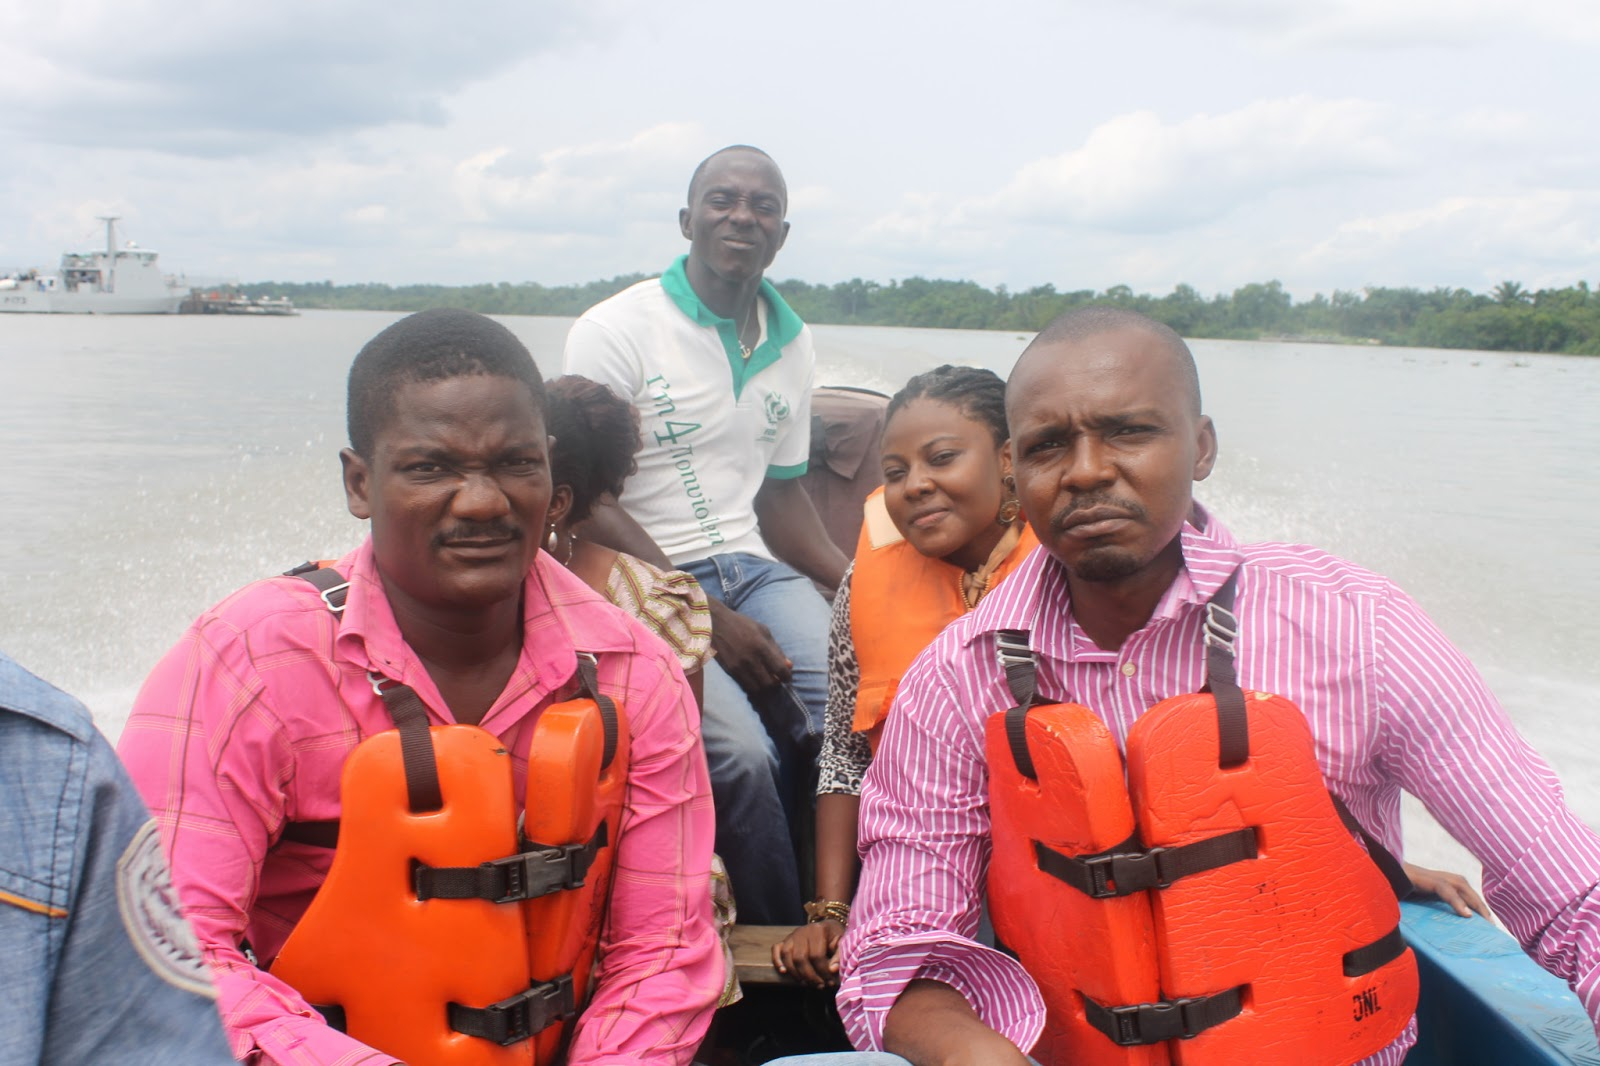 Spaces for Change PIB Advocacy Tour of Niger Delta Communities